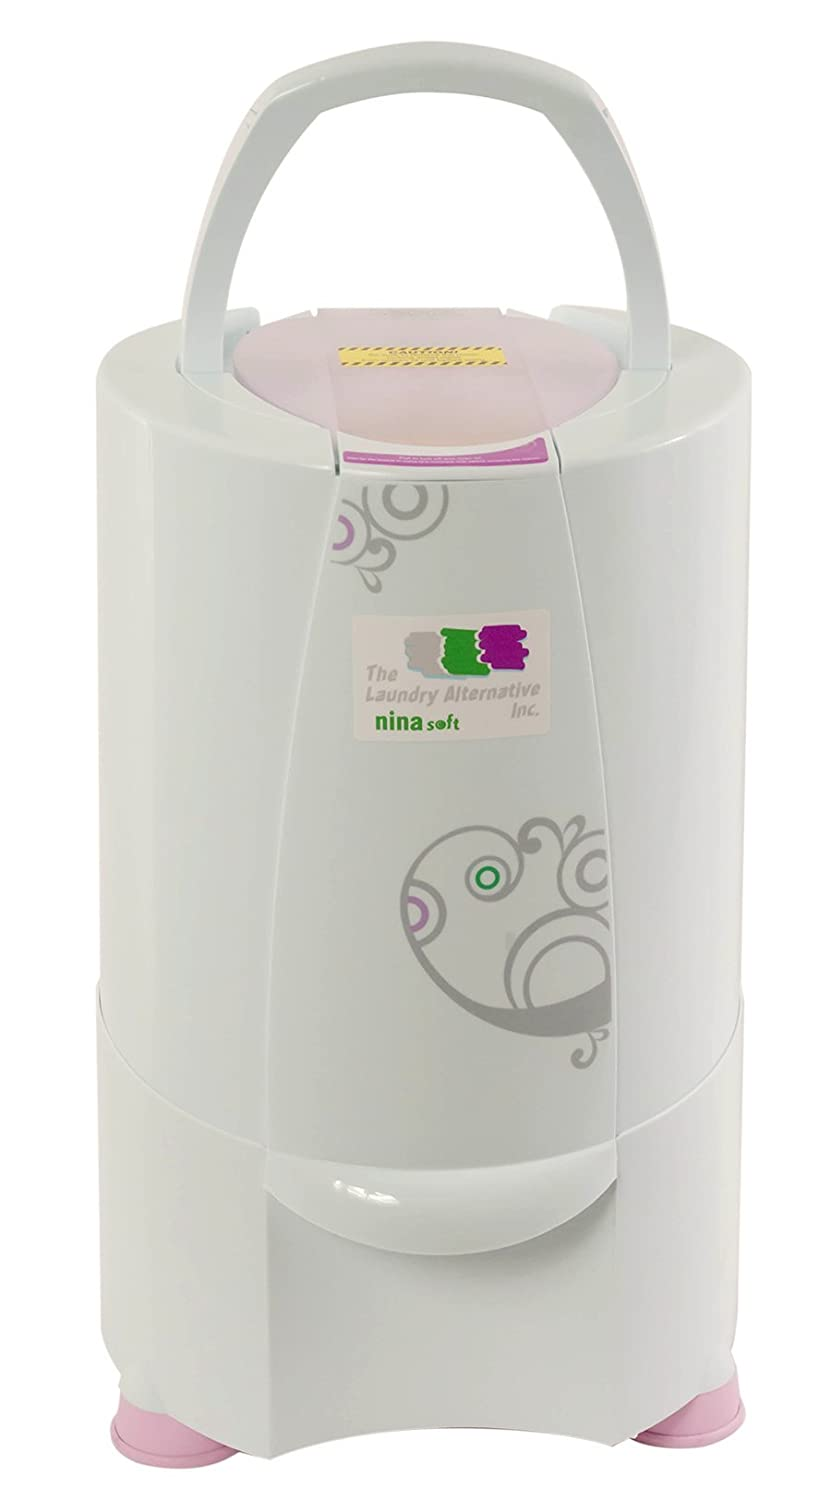 Buy The Laundry Alternative Nina Soft Spin Dryer, Ventless Portable Electric Dryer